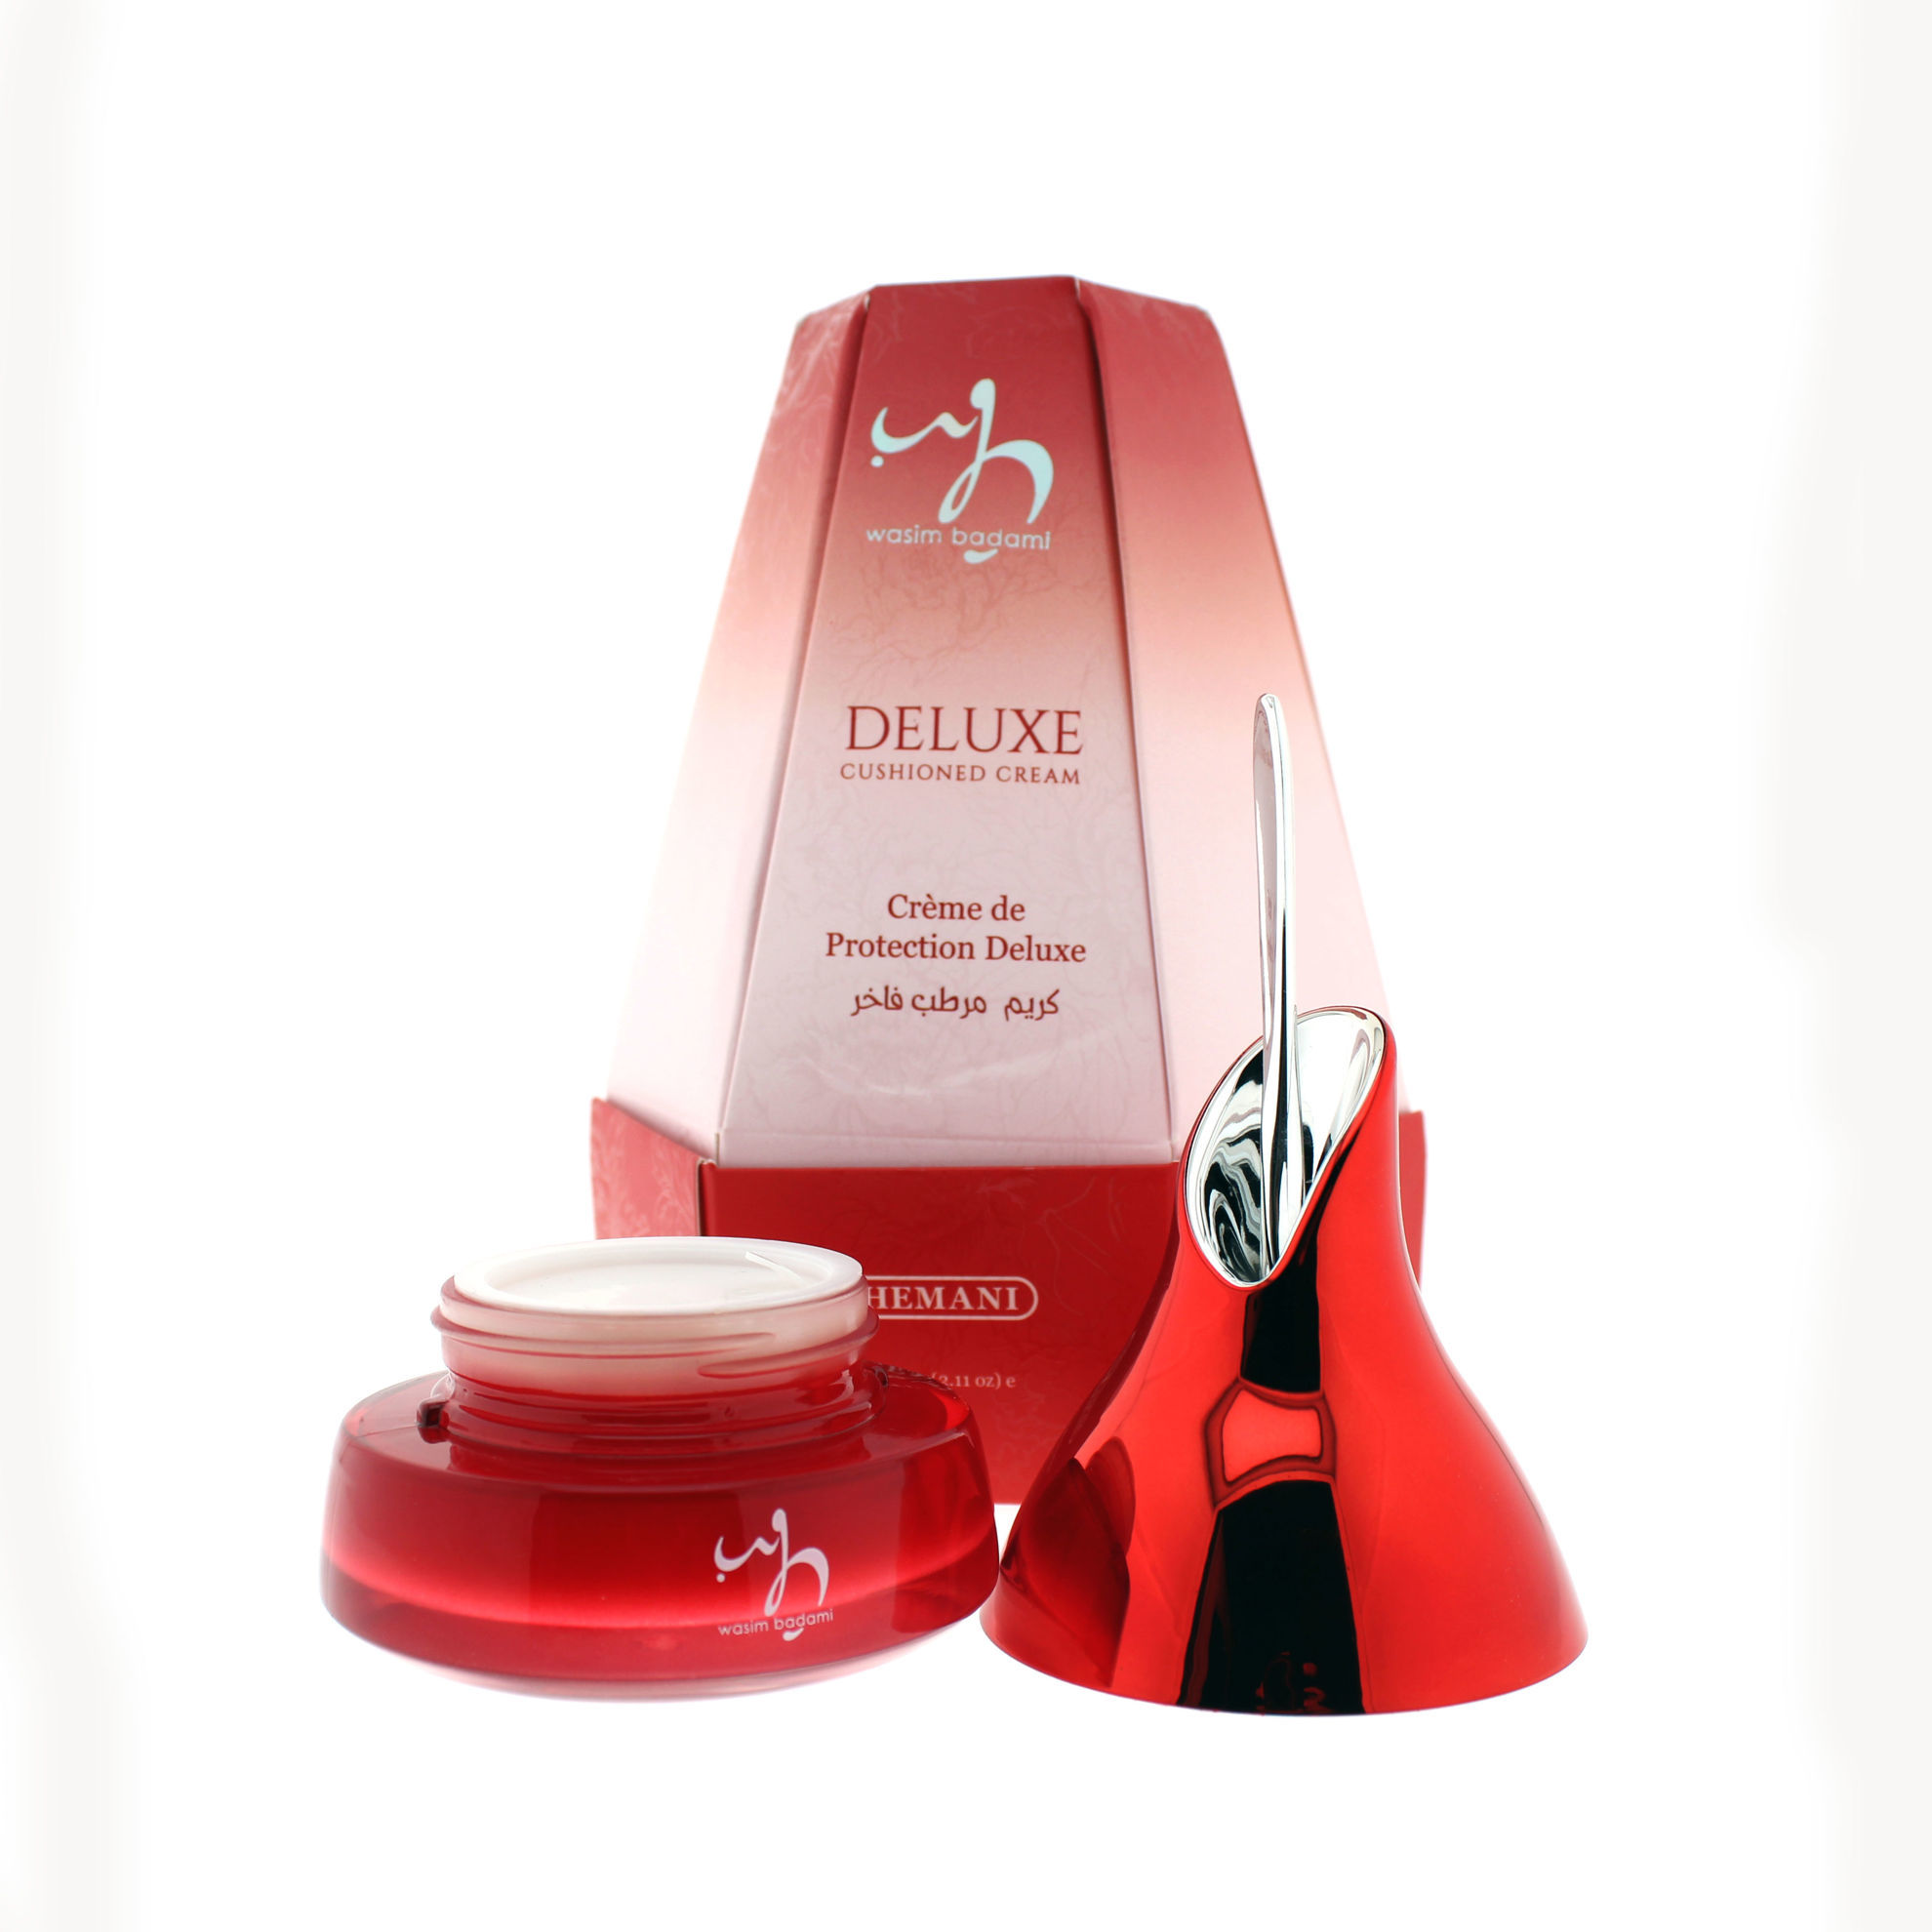 WB by Hemani Deluxe Cushioned Cream